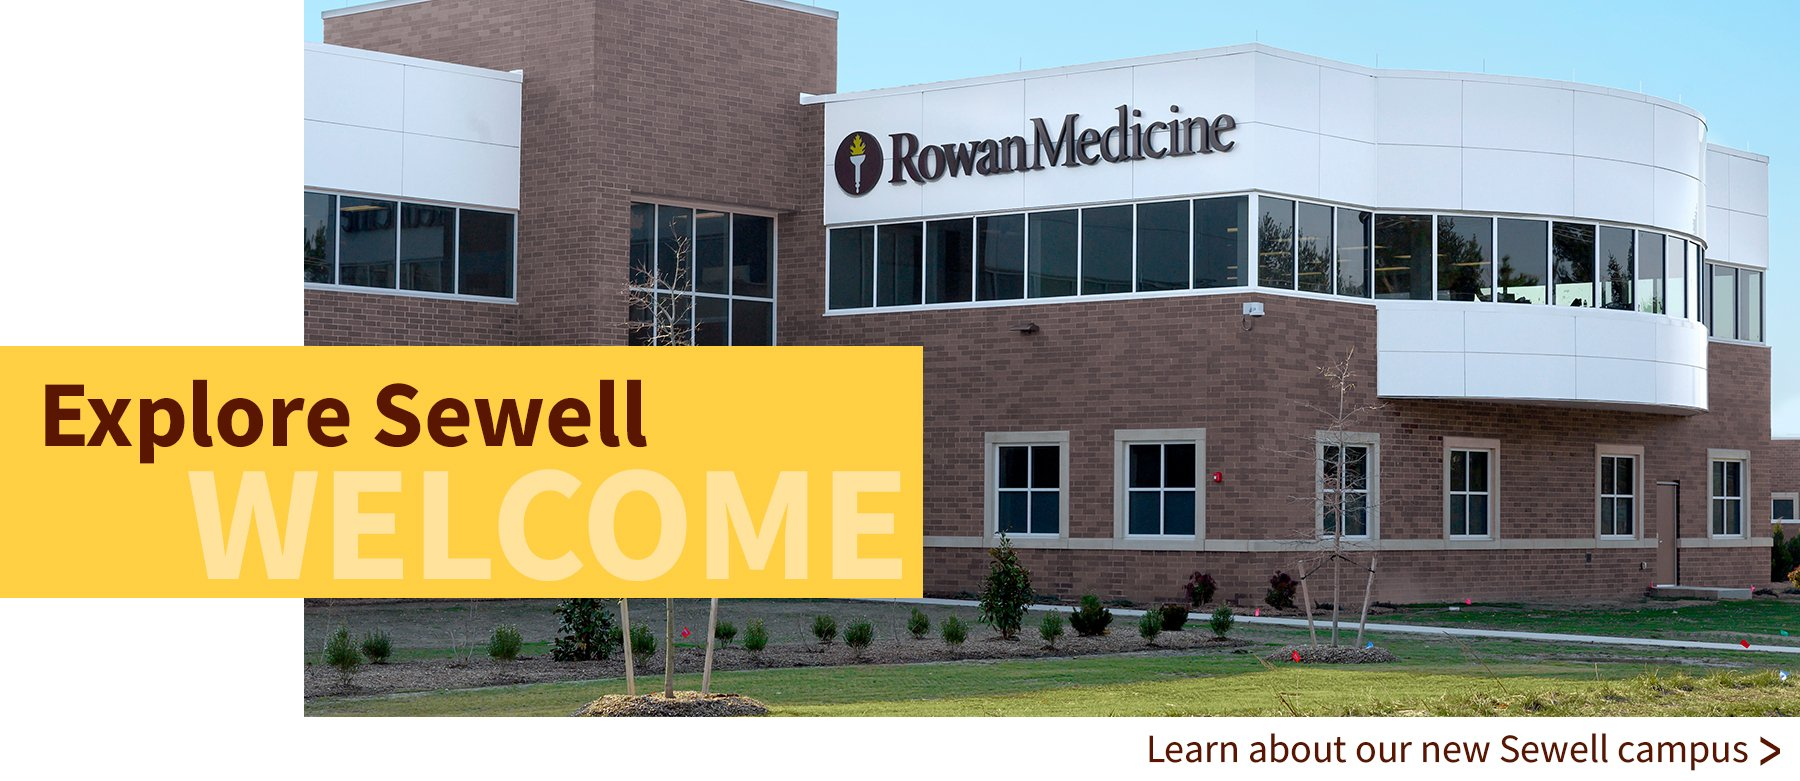 Welcome to our Sewell campus - Click for more info